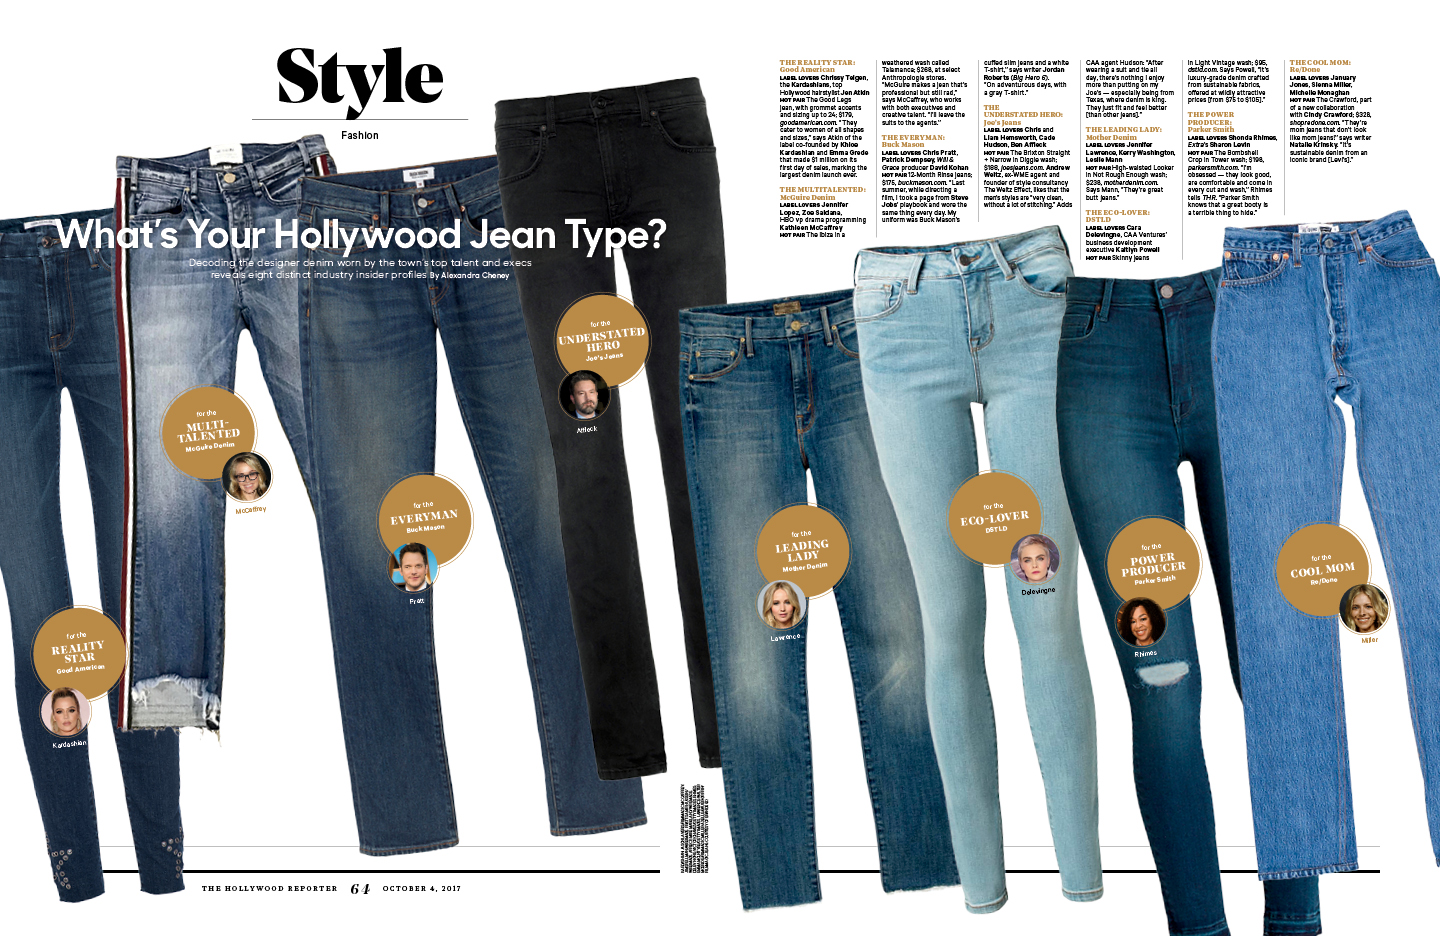 What's Your Hollywood Jean Type? / The Hollywood Reporter / 10.4.17 / kelsey stefanson / art direction + graphic design / yeskelsey.com